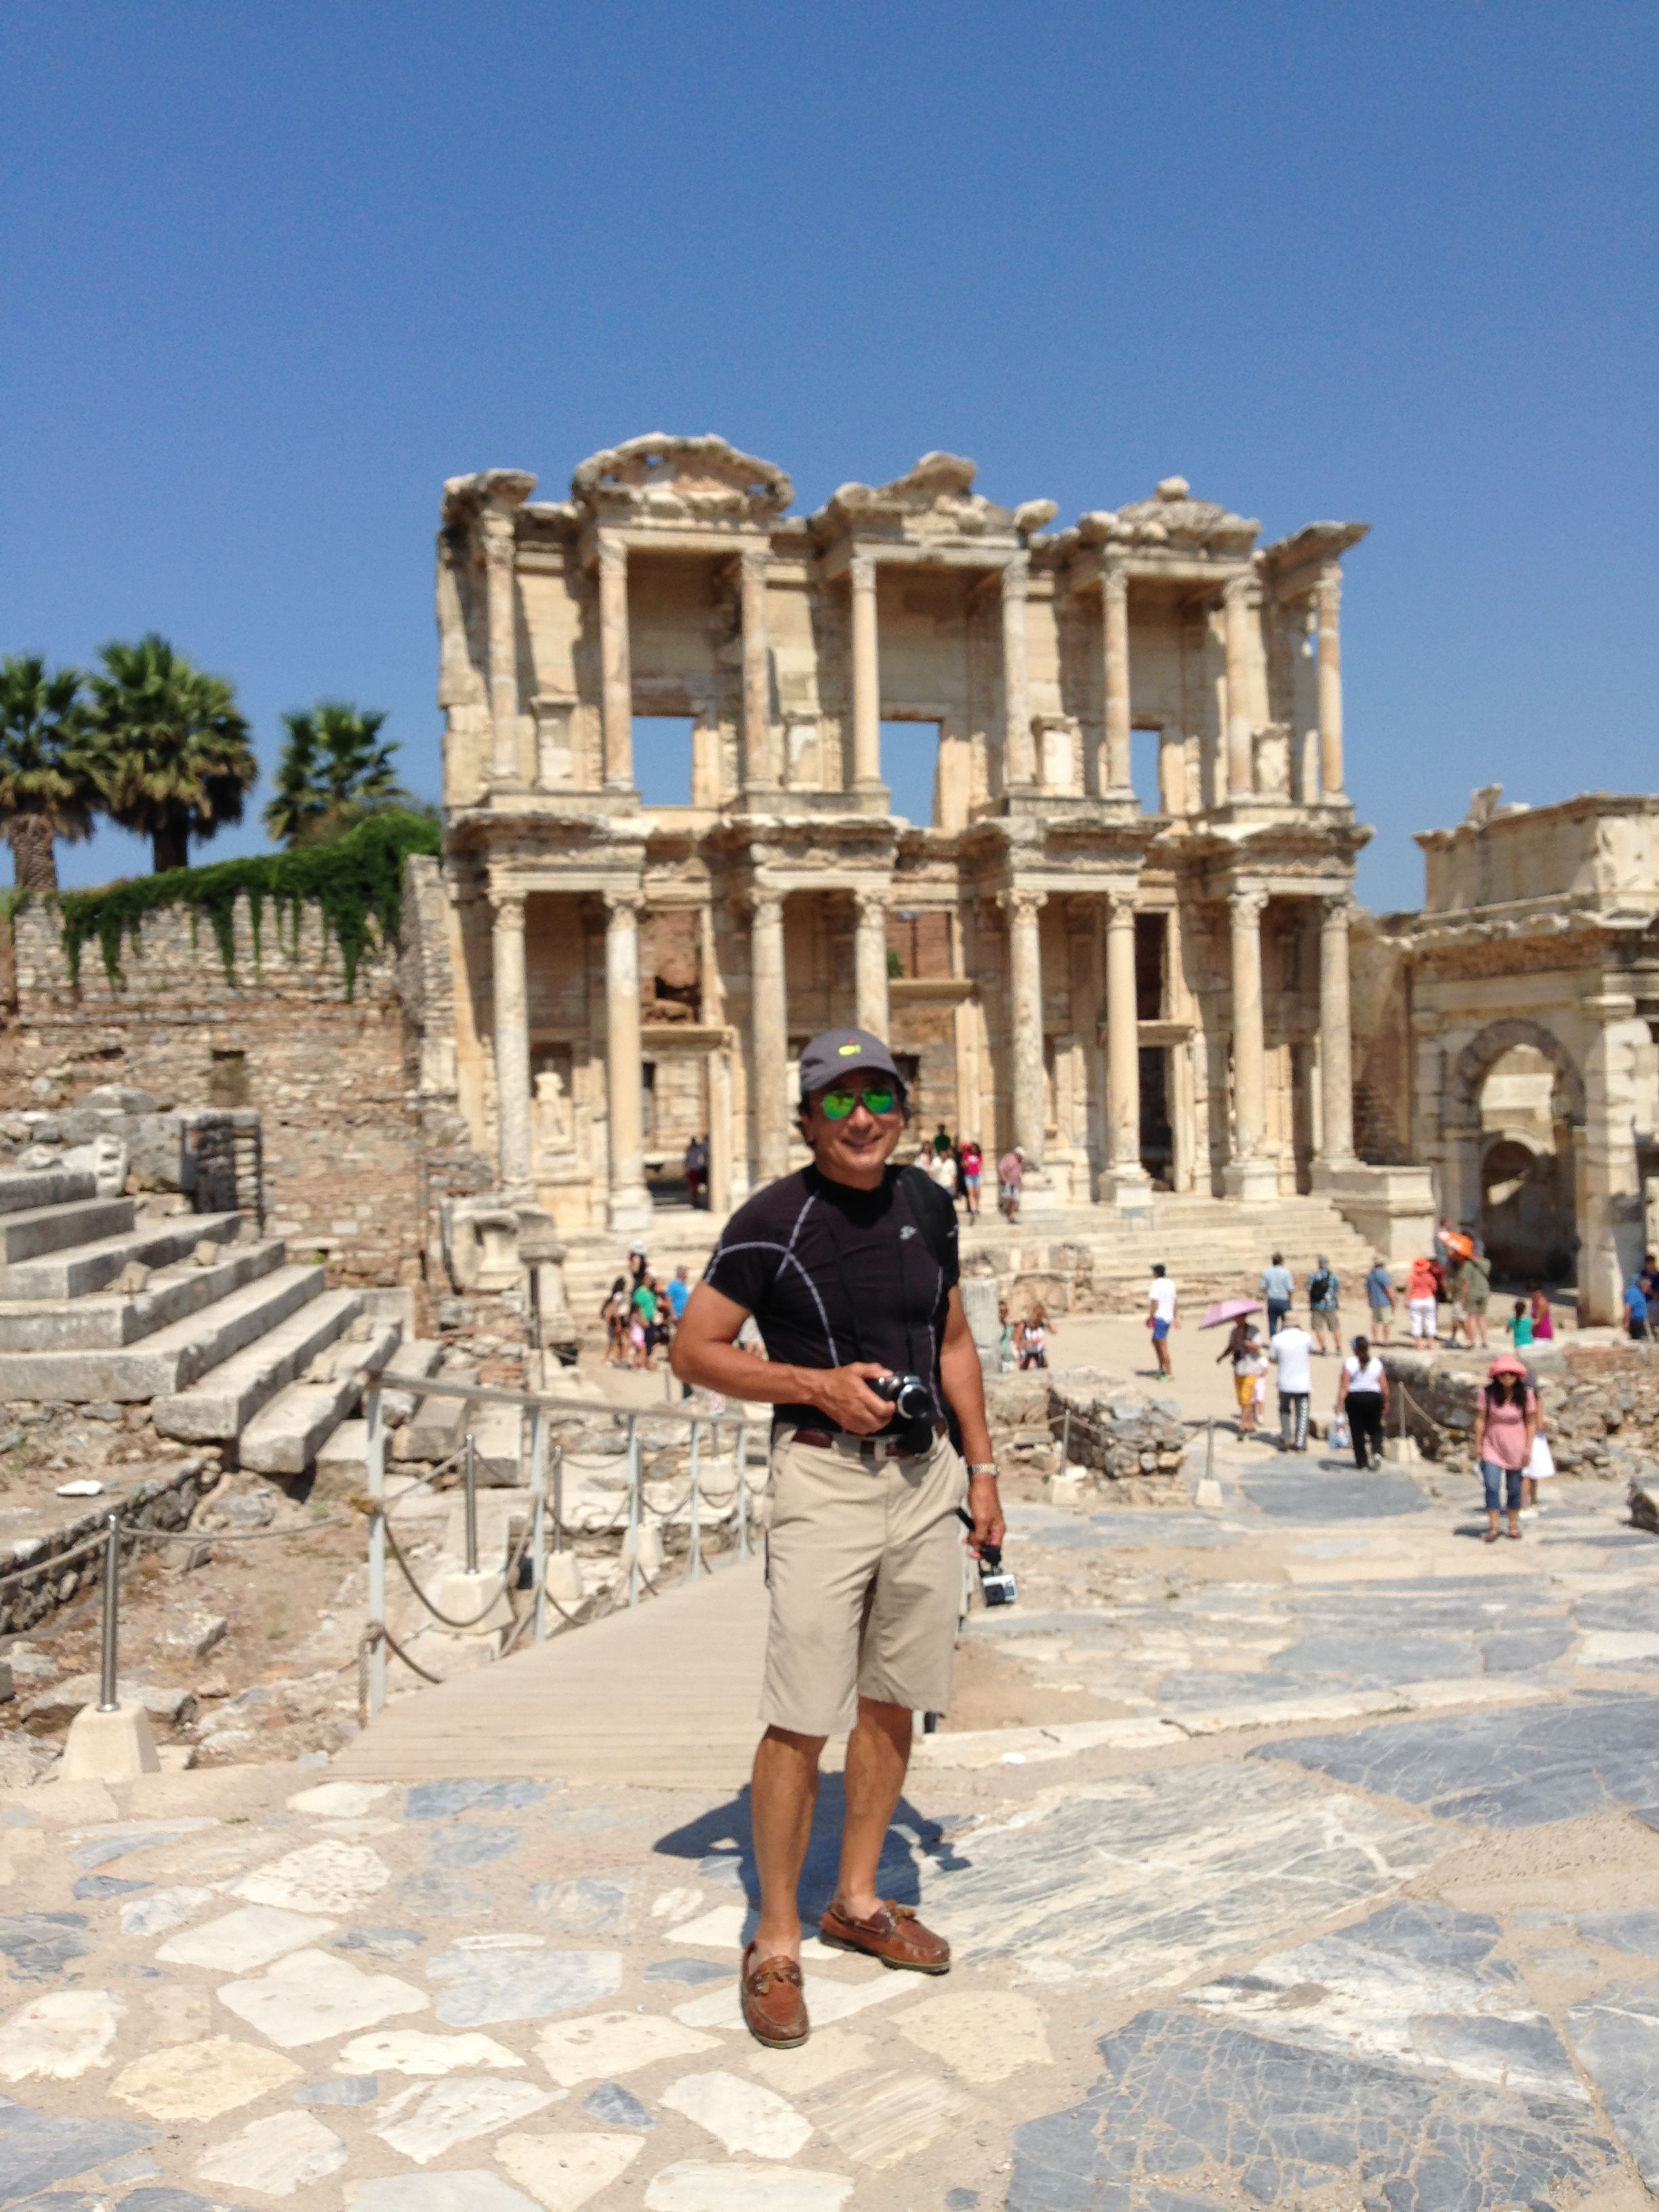 The library ephesus ud peter m wong udud luxurytravelboutique